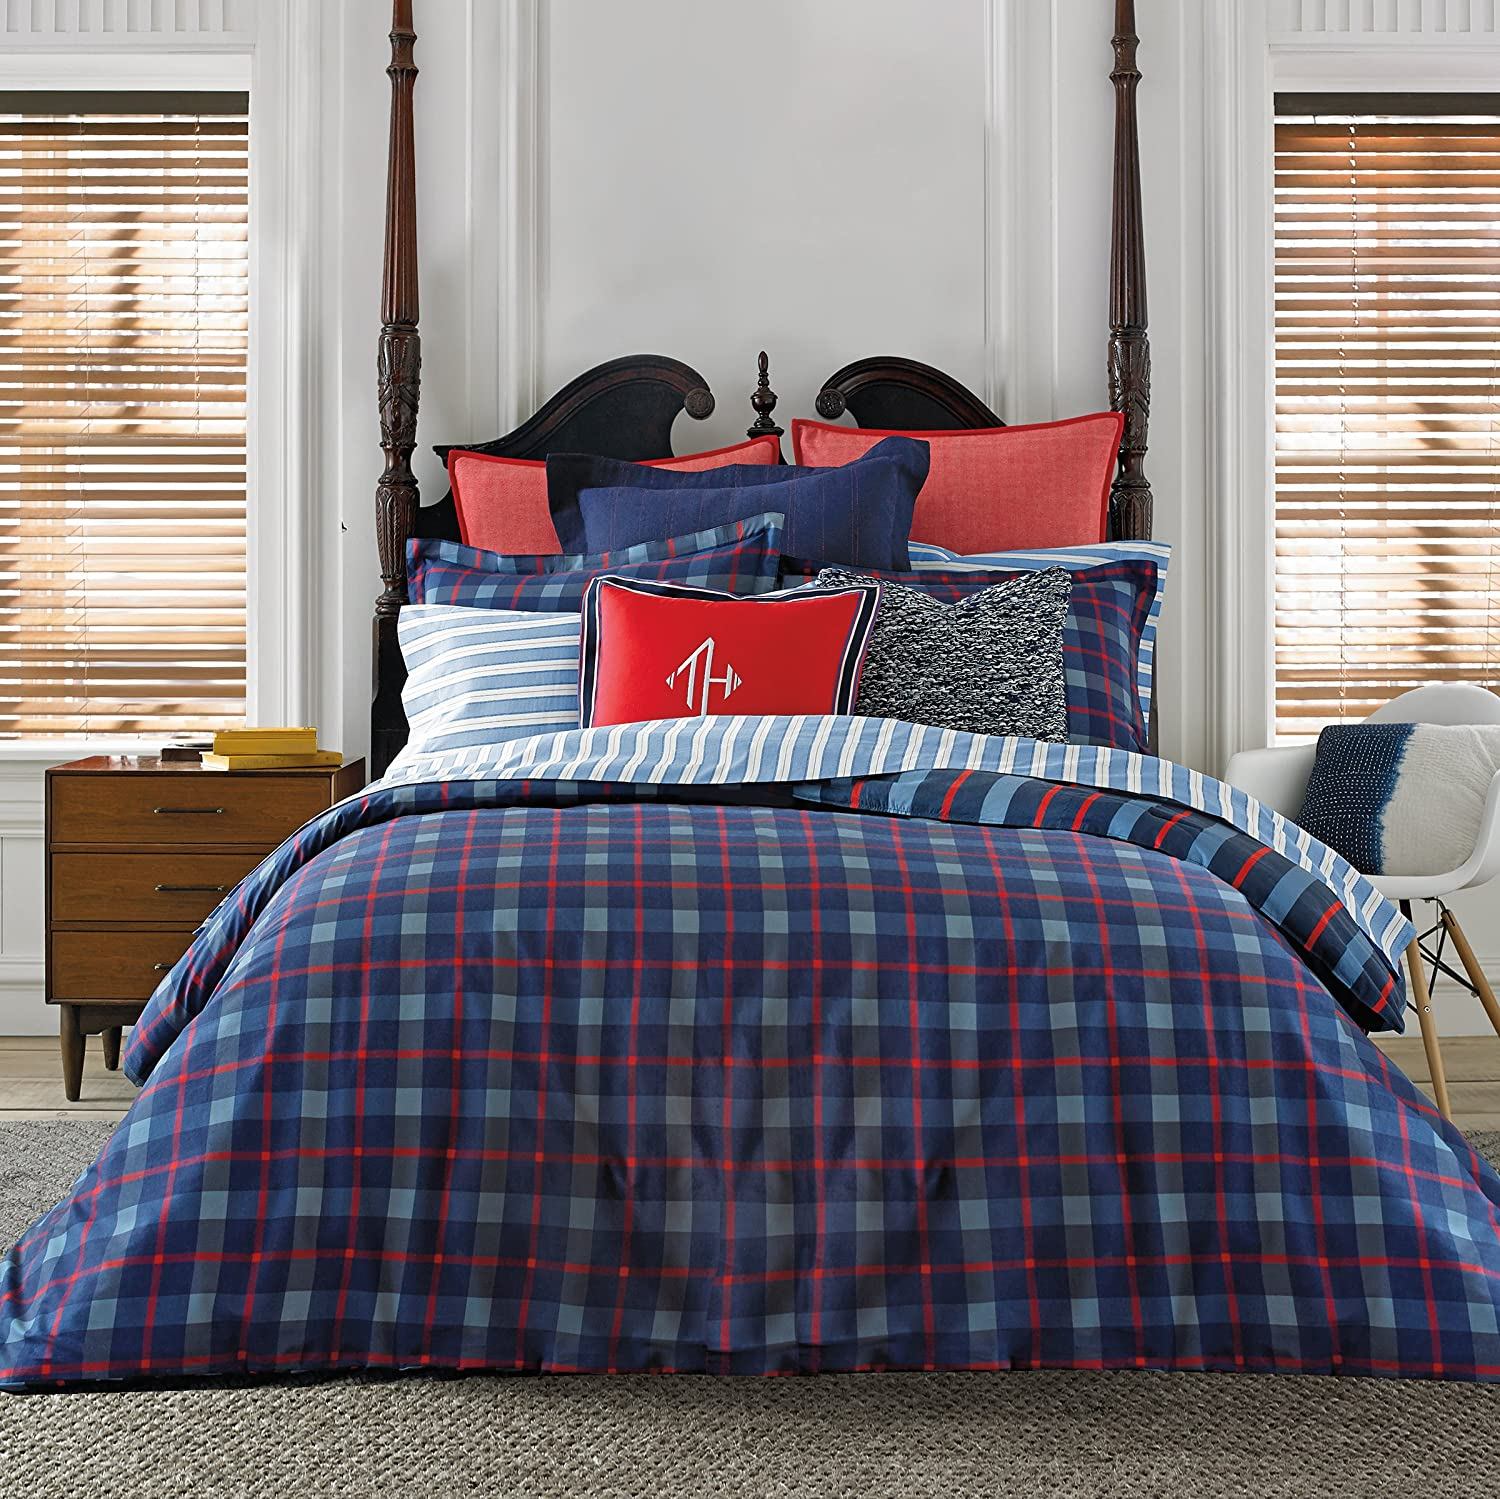 Amazon.com: Tommy Hilfiger Boston Plaid Comforter Set, Full/Queen: Home U0026  Kitchen